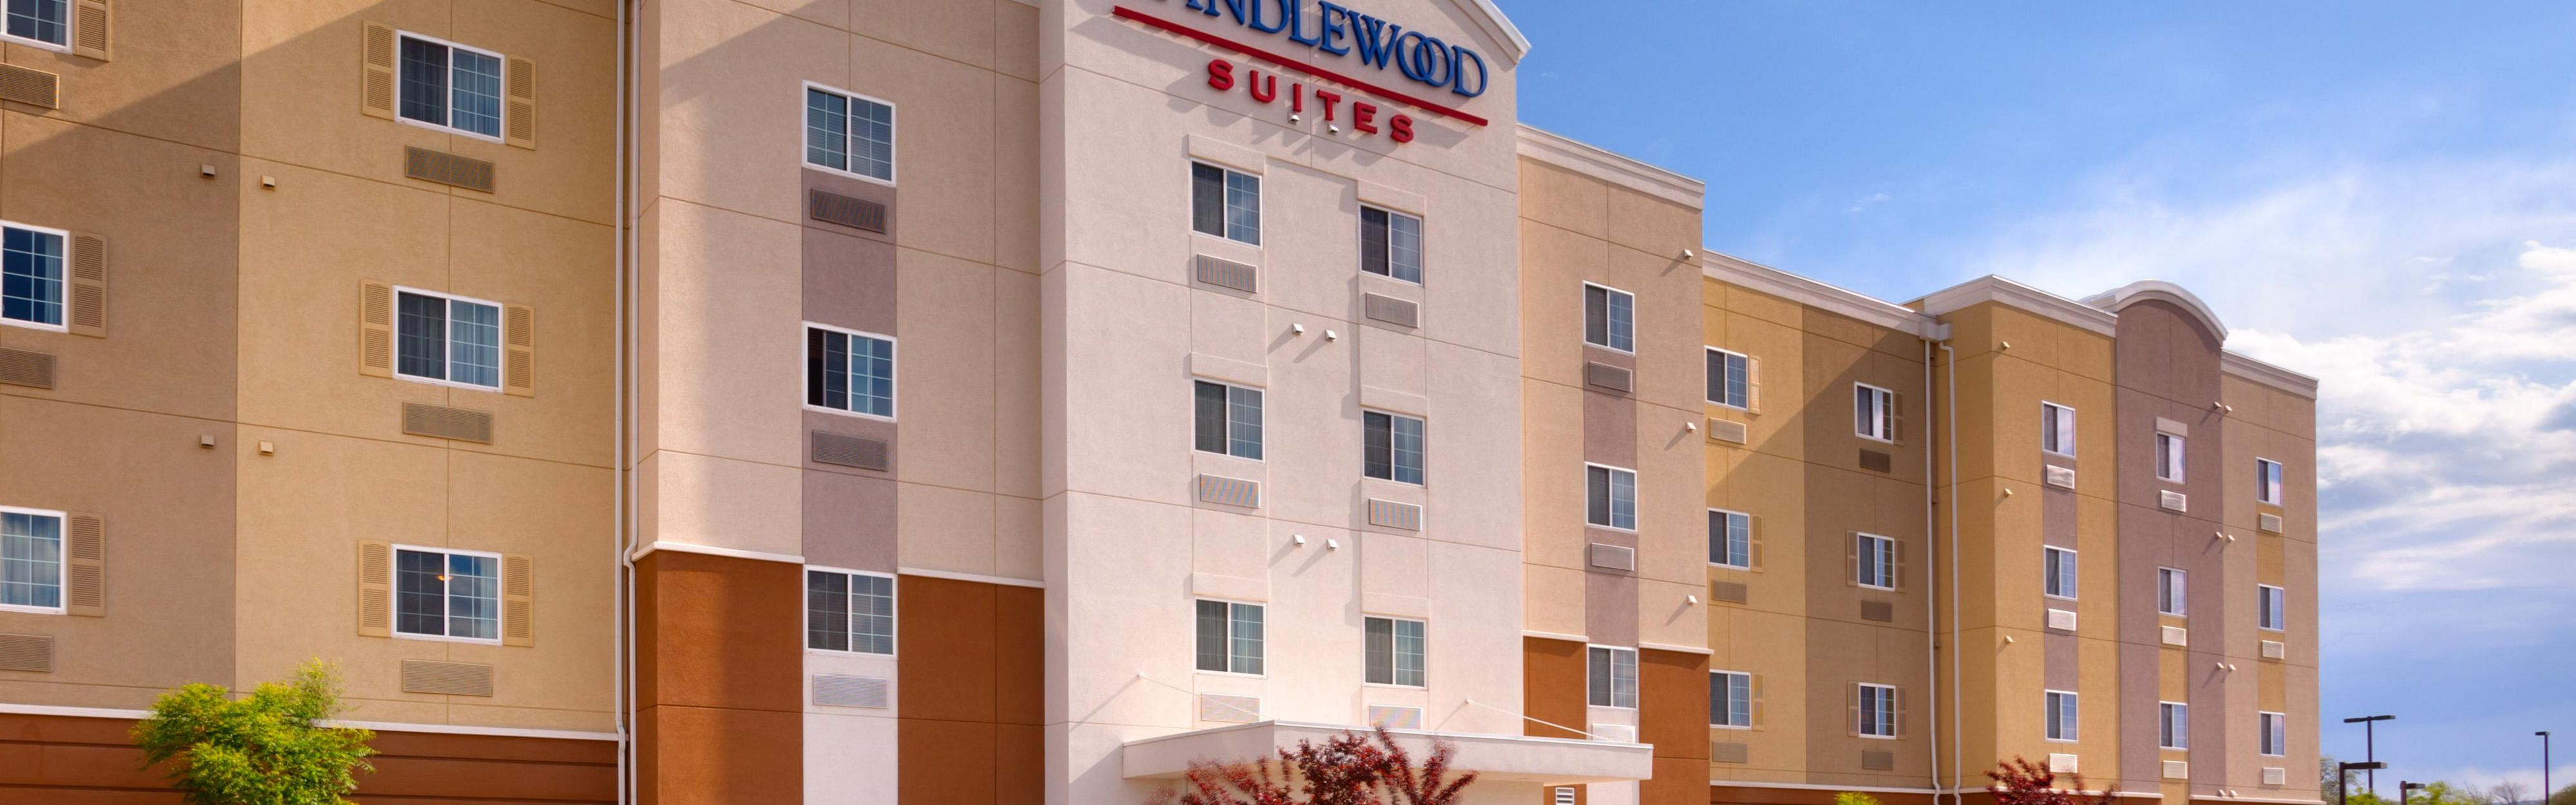 Hotels And Motels In Grand Junction Colorado